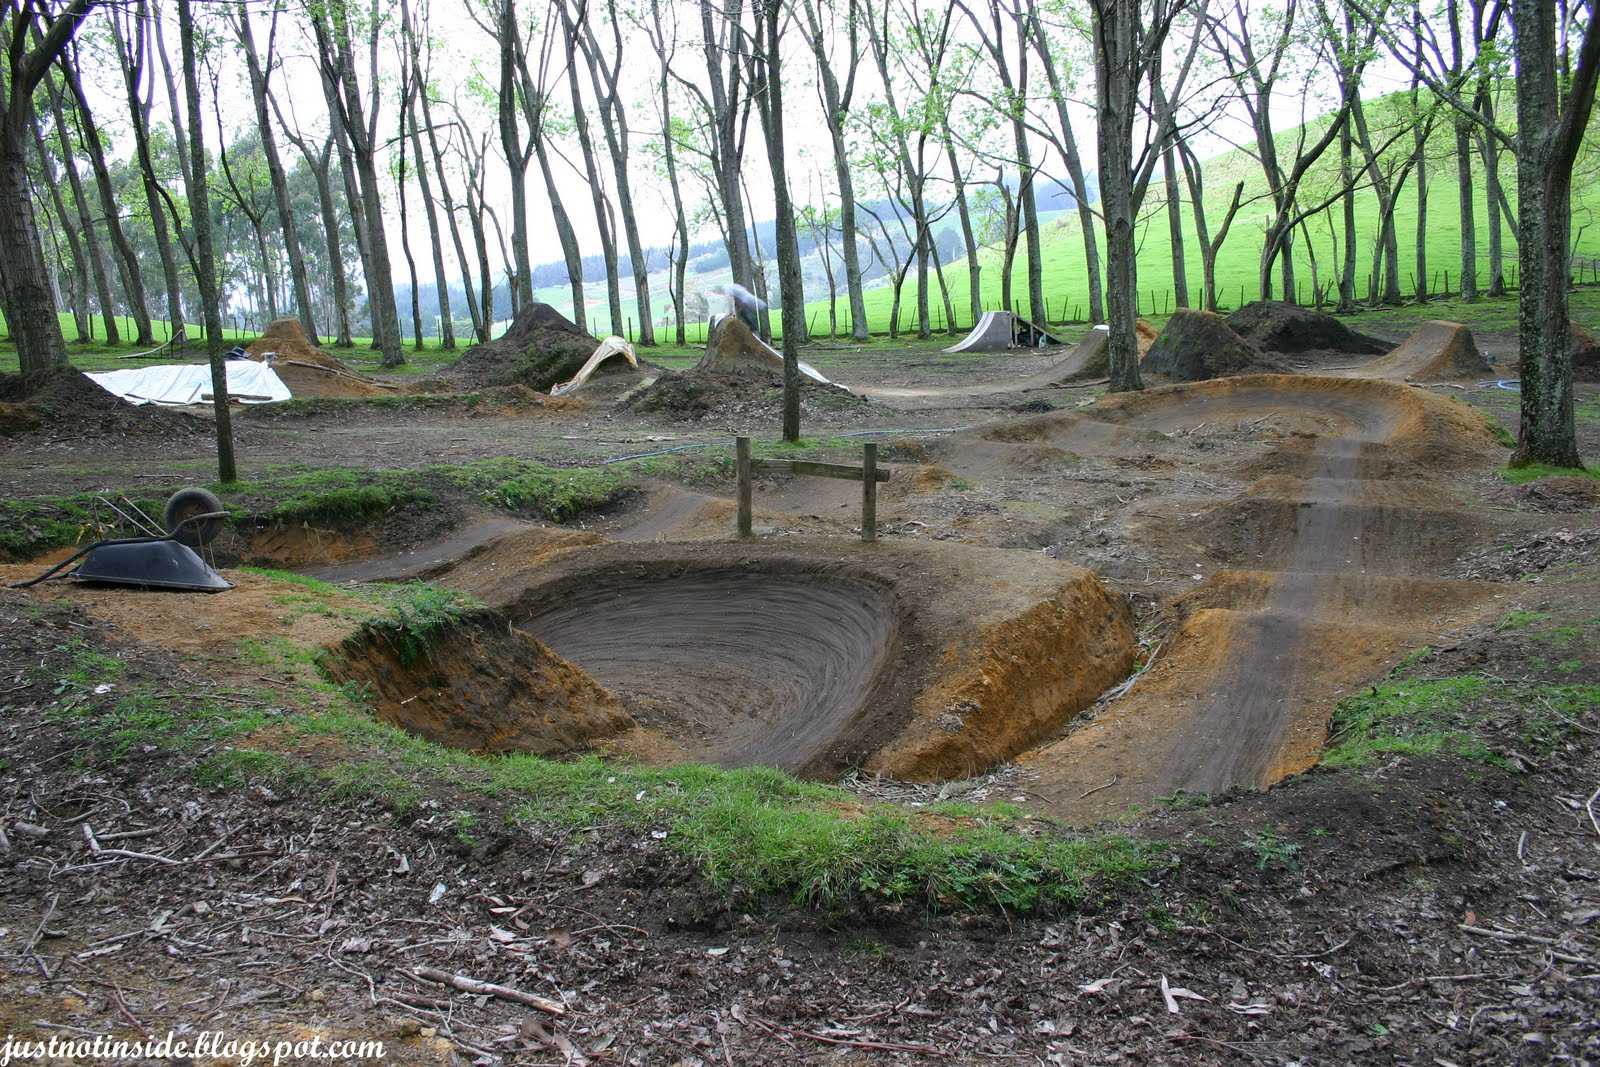 1000+ images about Rugged Material PumpTrack on Pinterest ...